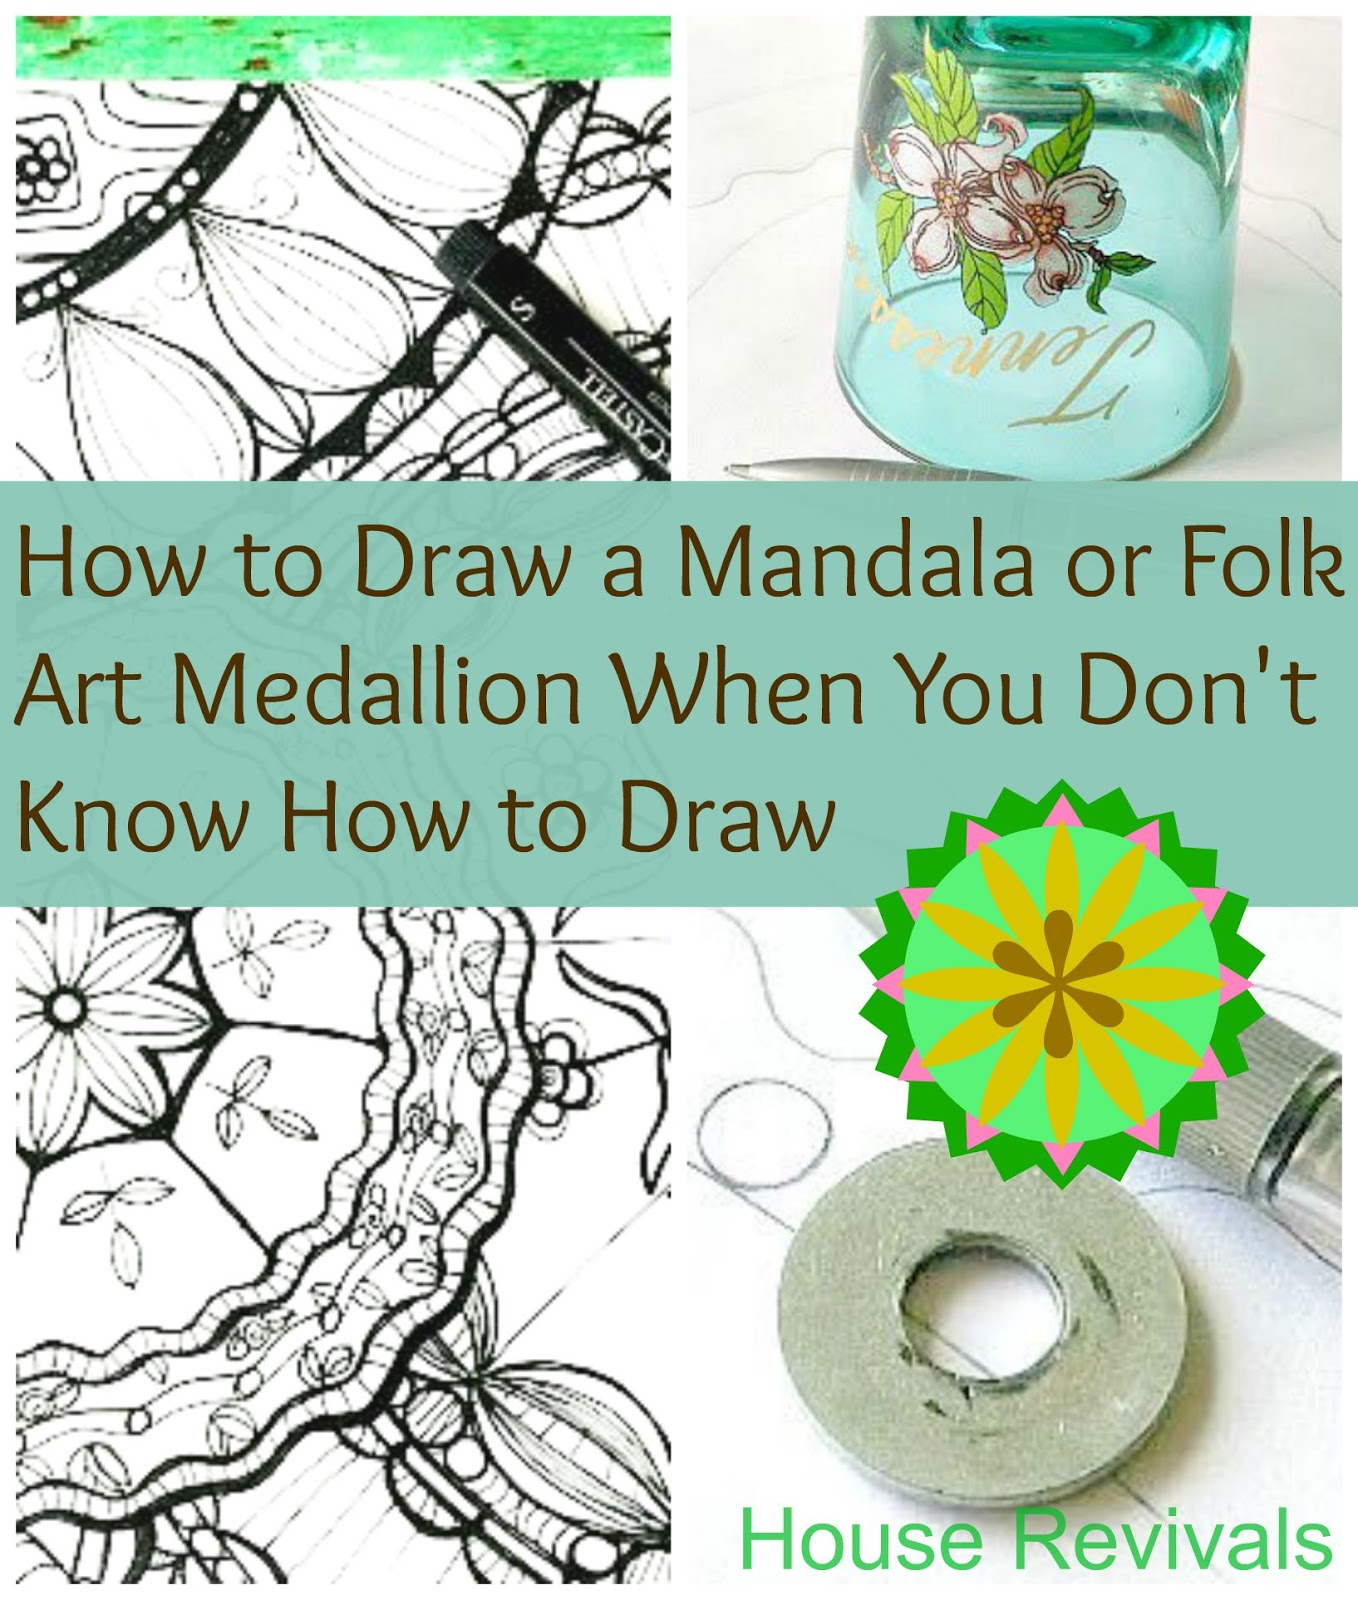 House Revivals Easy Mandala Or Folk Art Medallion Tutorial